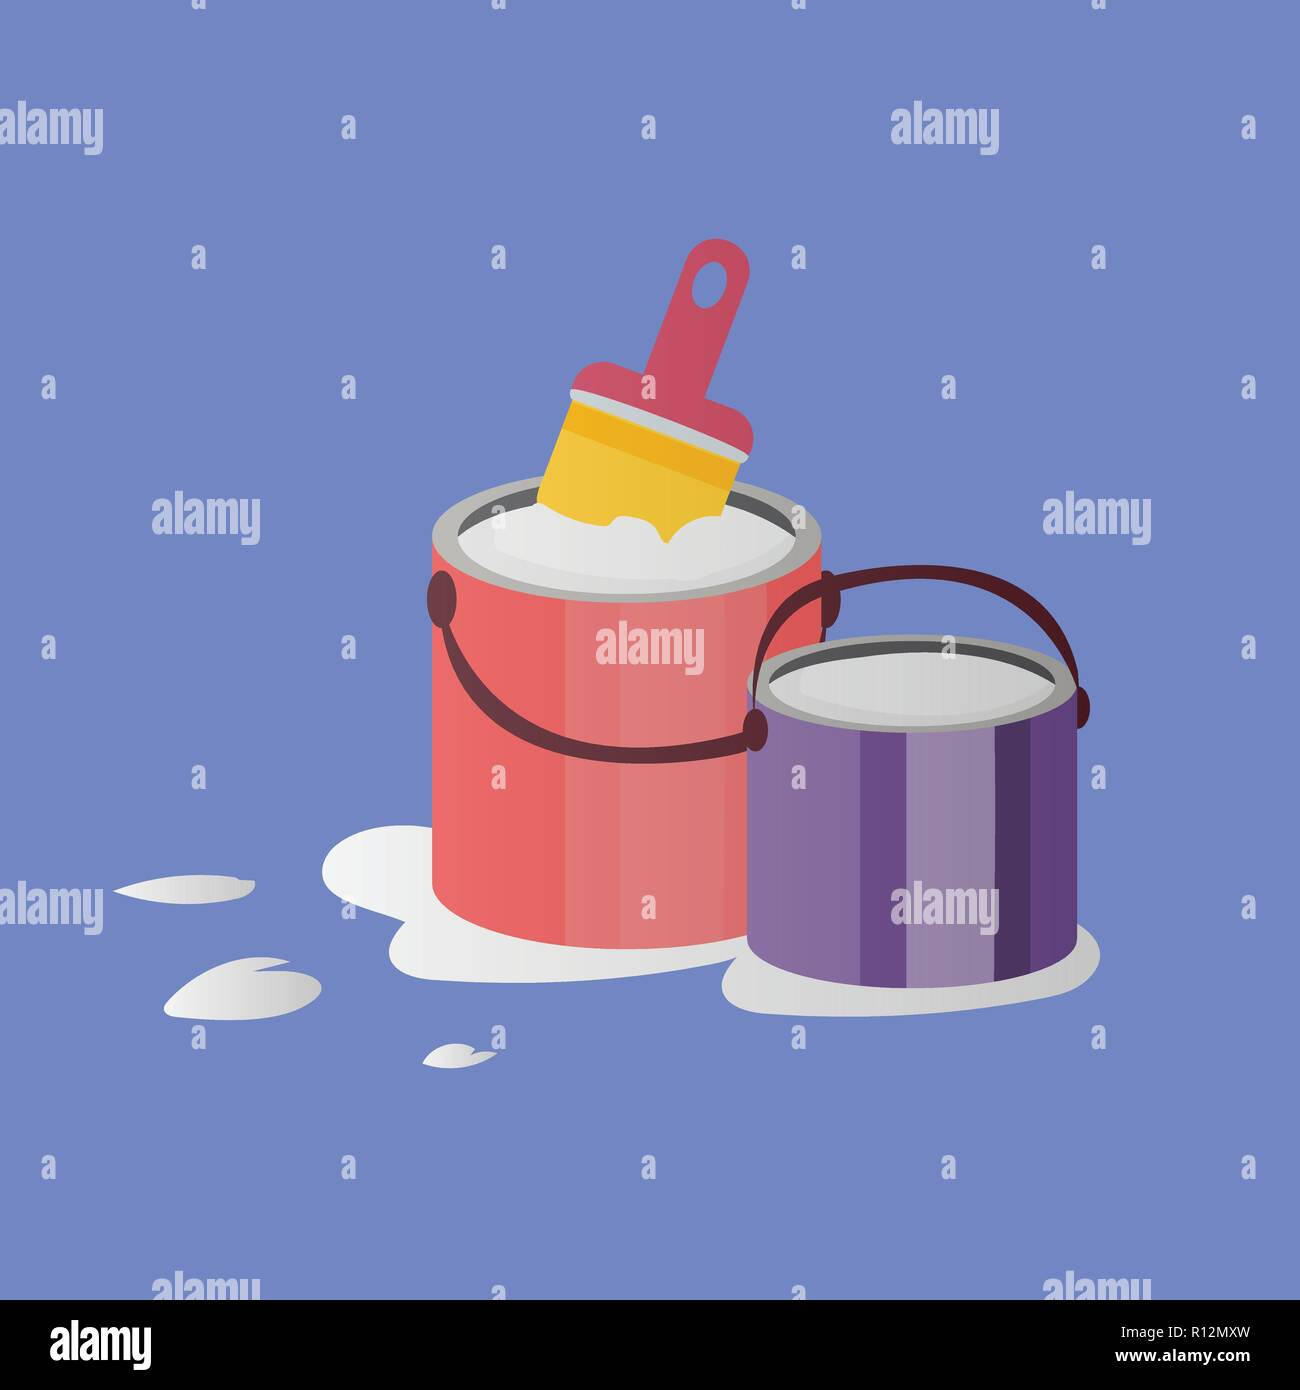 Illustration of paintbrush and two opened paint buckets with handles. Vector objects in flat style - Stock Vector